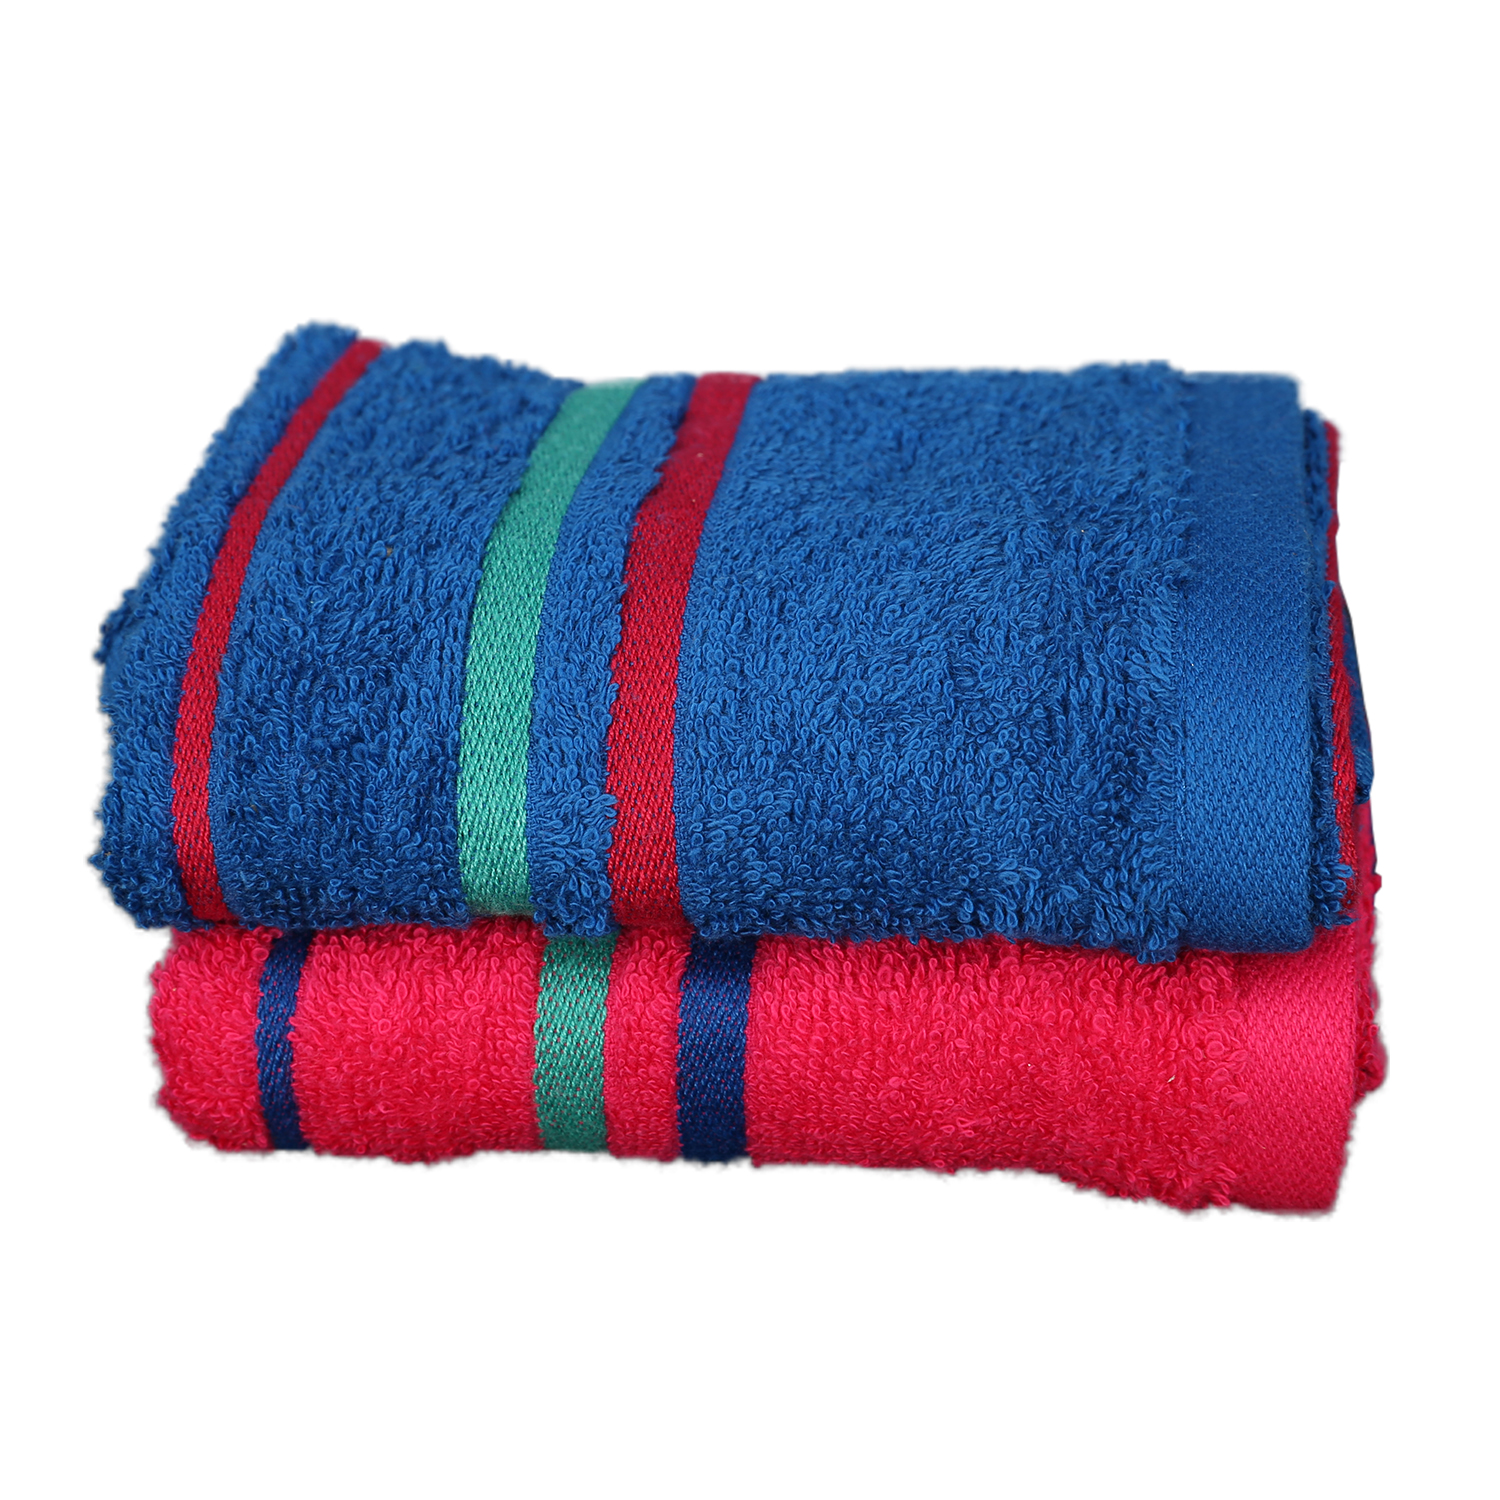 Emilia Carded Cotton Hand Towels in Blue & Fuchsia Colour by Living Essence